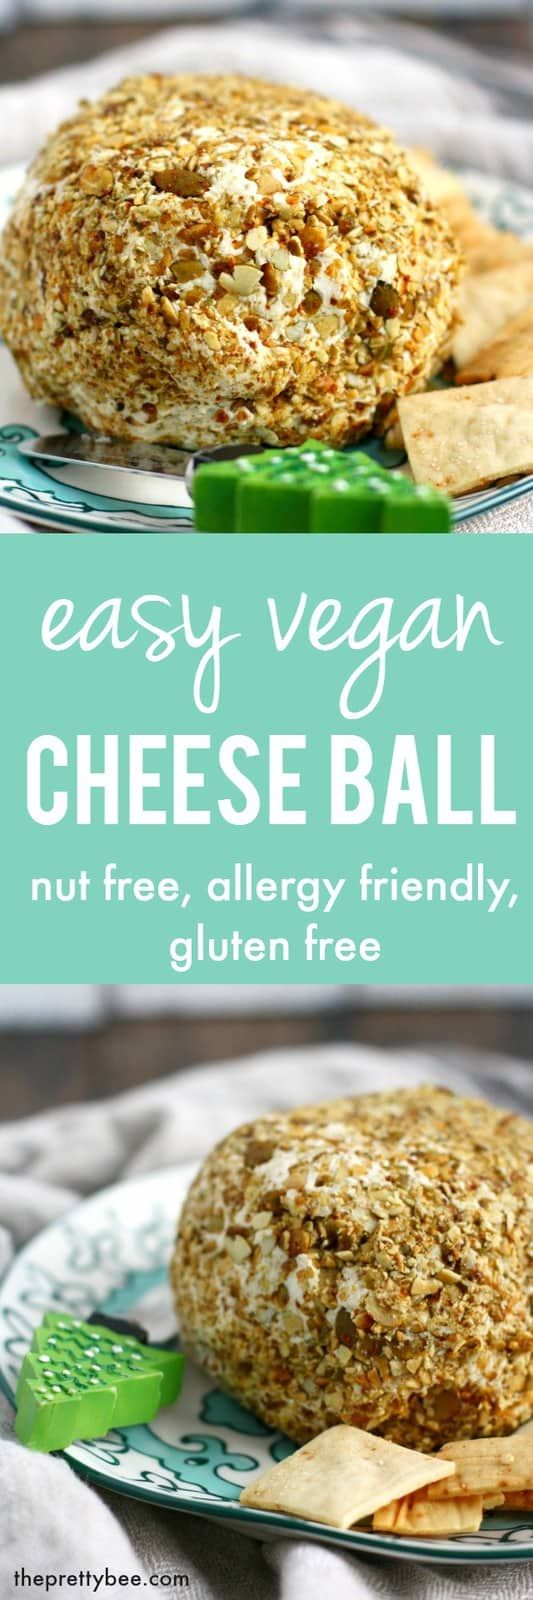 A Creamy Flavorful Vegan Cheese Ball Is The Perfect Party Appetizer Nutfree Dairyfree Glutenfree Vegan Vegan Cheese Cheese Ball Easy Vegan